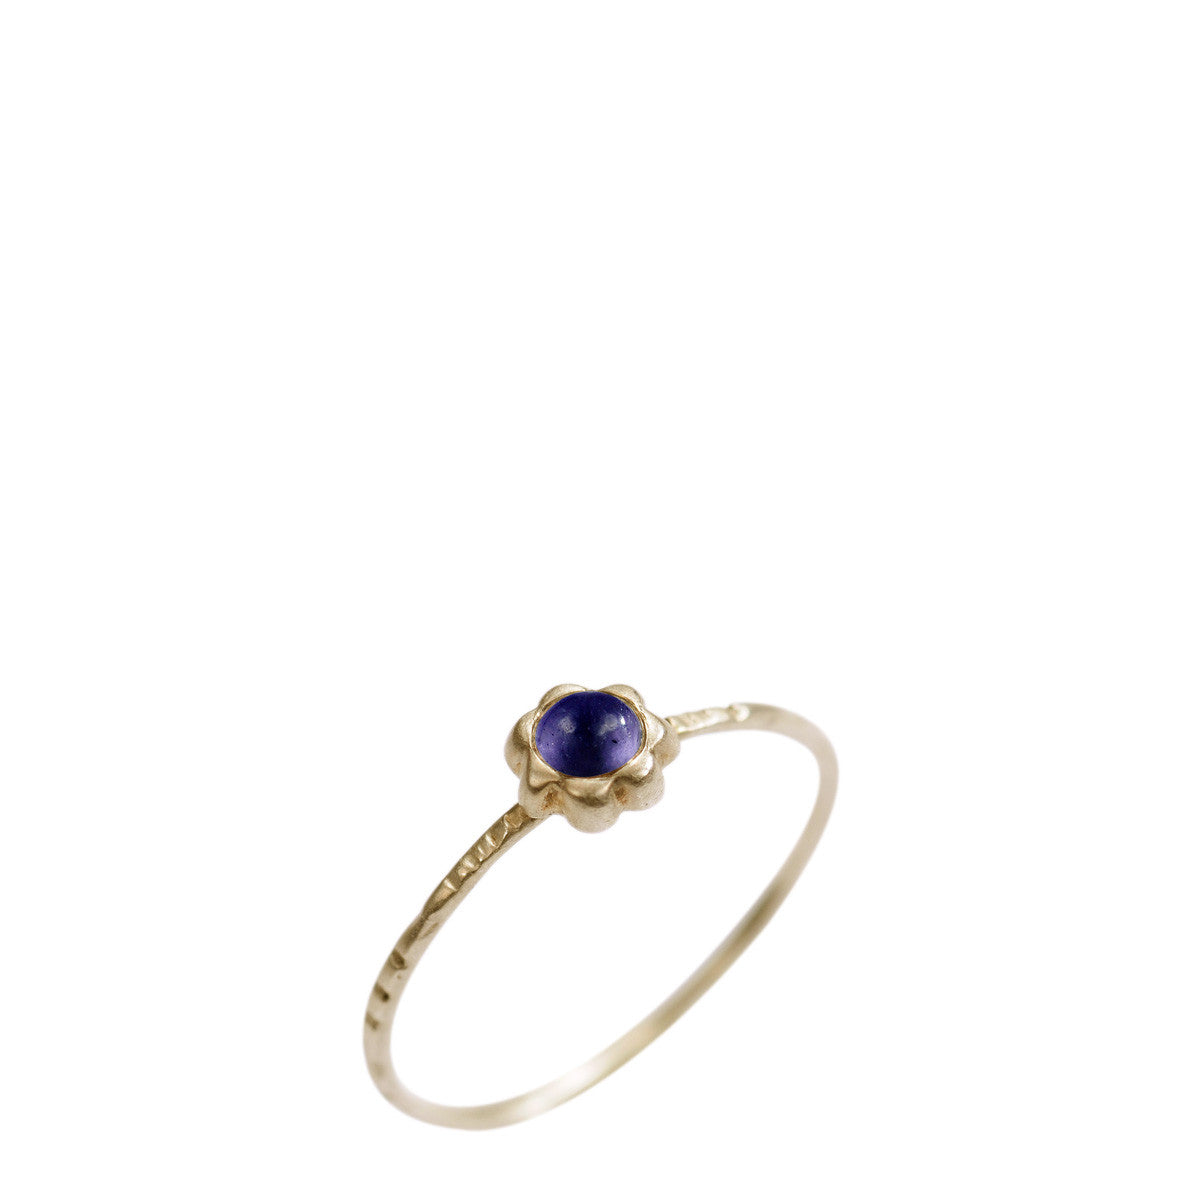 10K Gold Star Flower with Iolite Ring